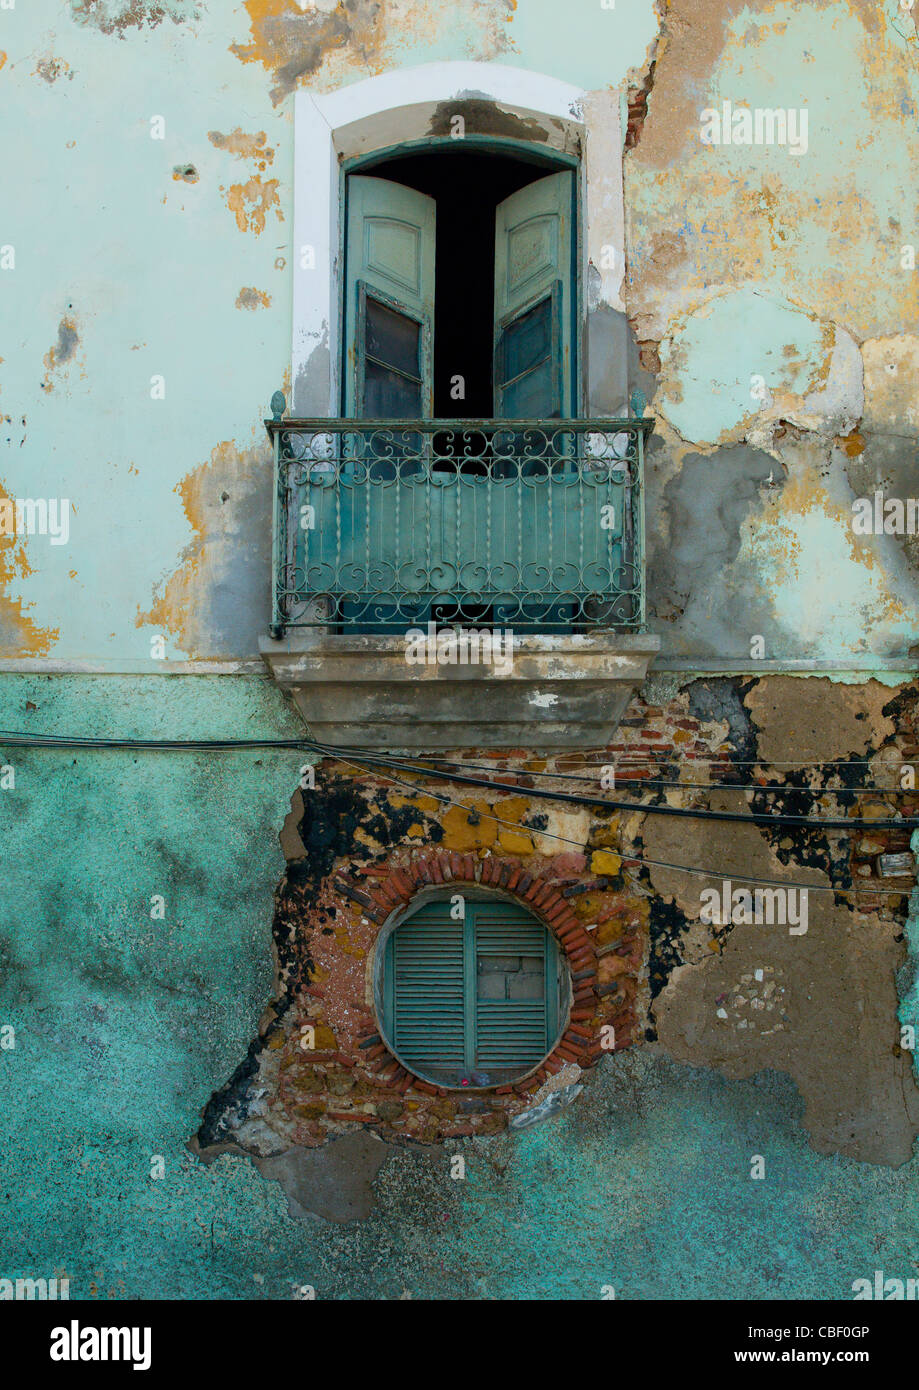 Balcony Of A Dilapidated Old Colonial House, Luanda, Angola - Stock Image